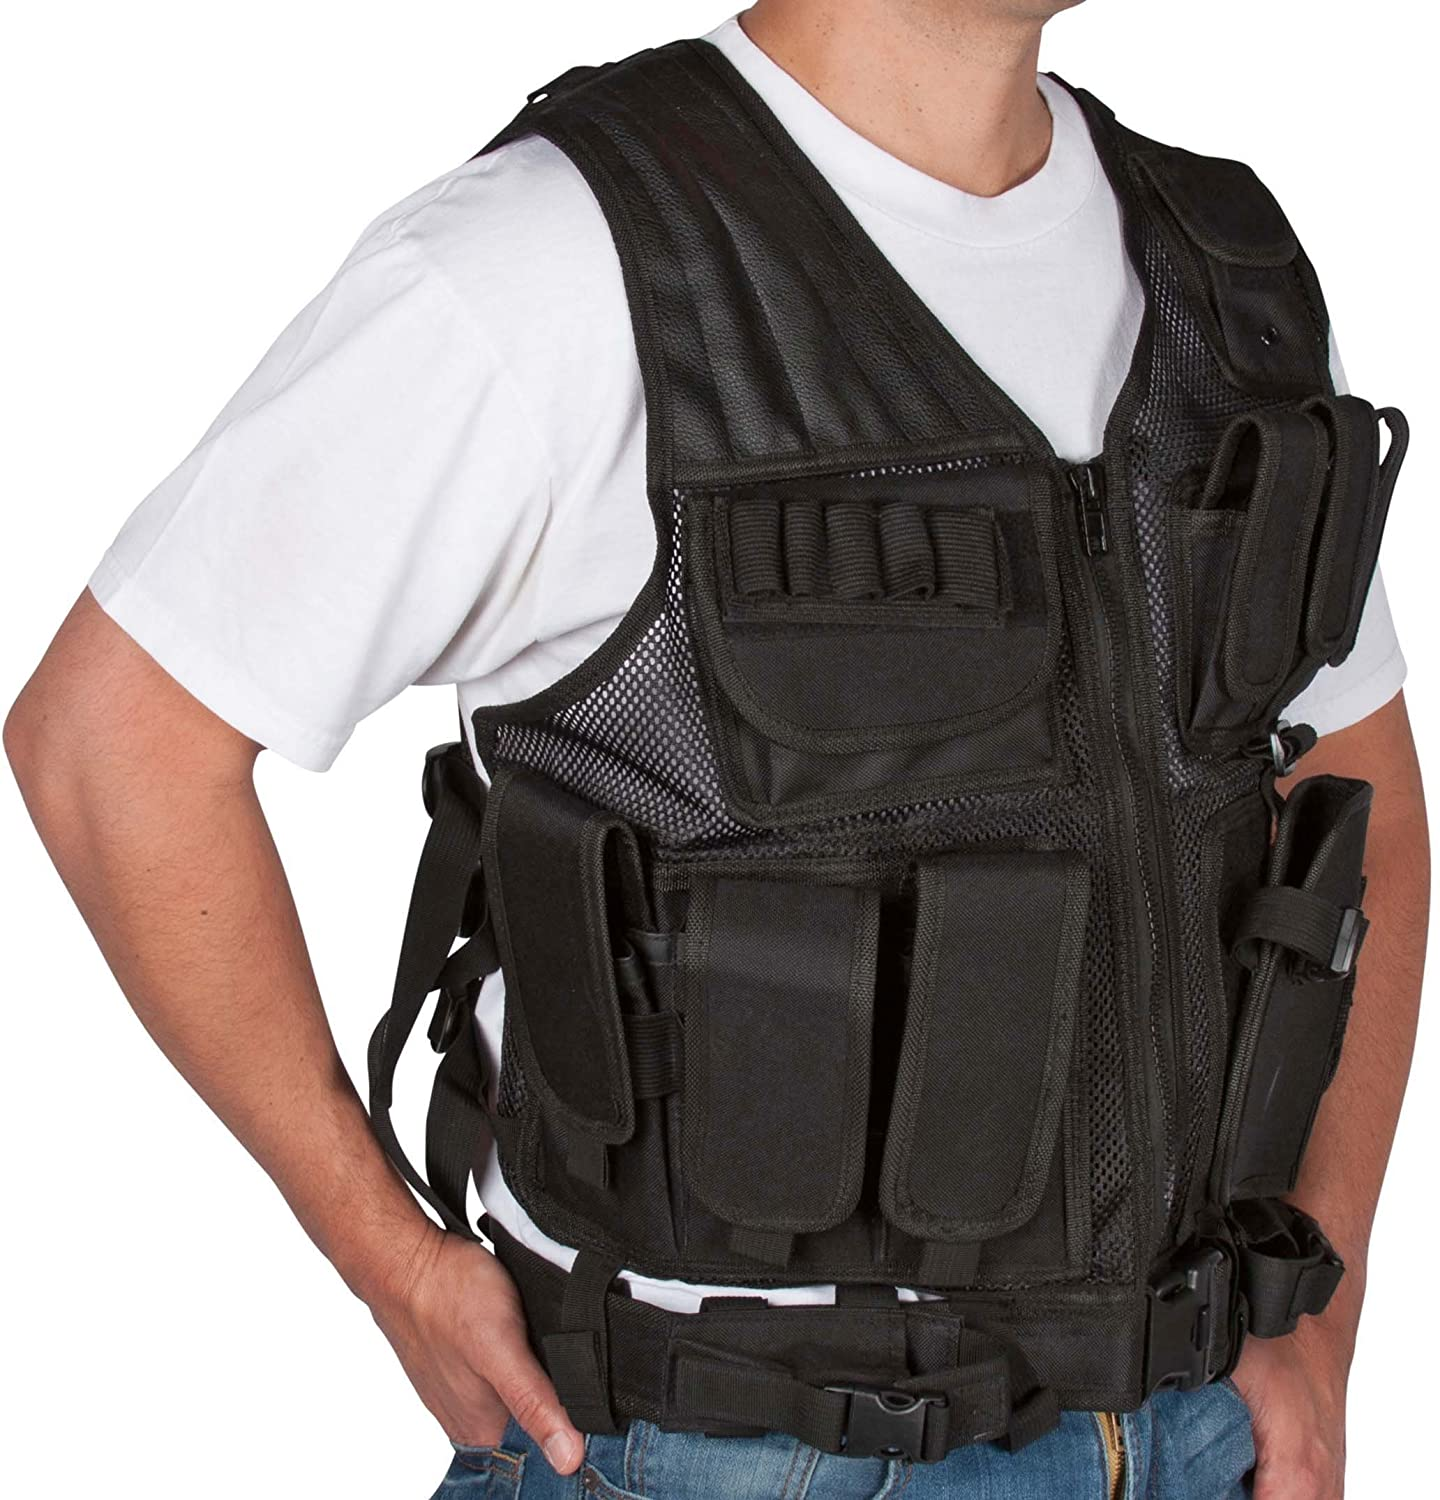 Tactical Vest With Pistol Holster Tactical Vest With Holster